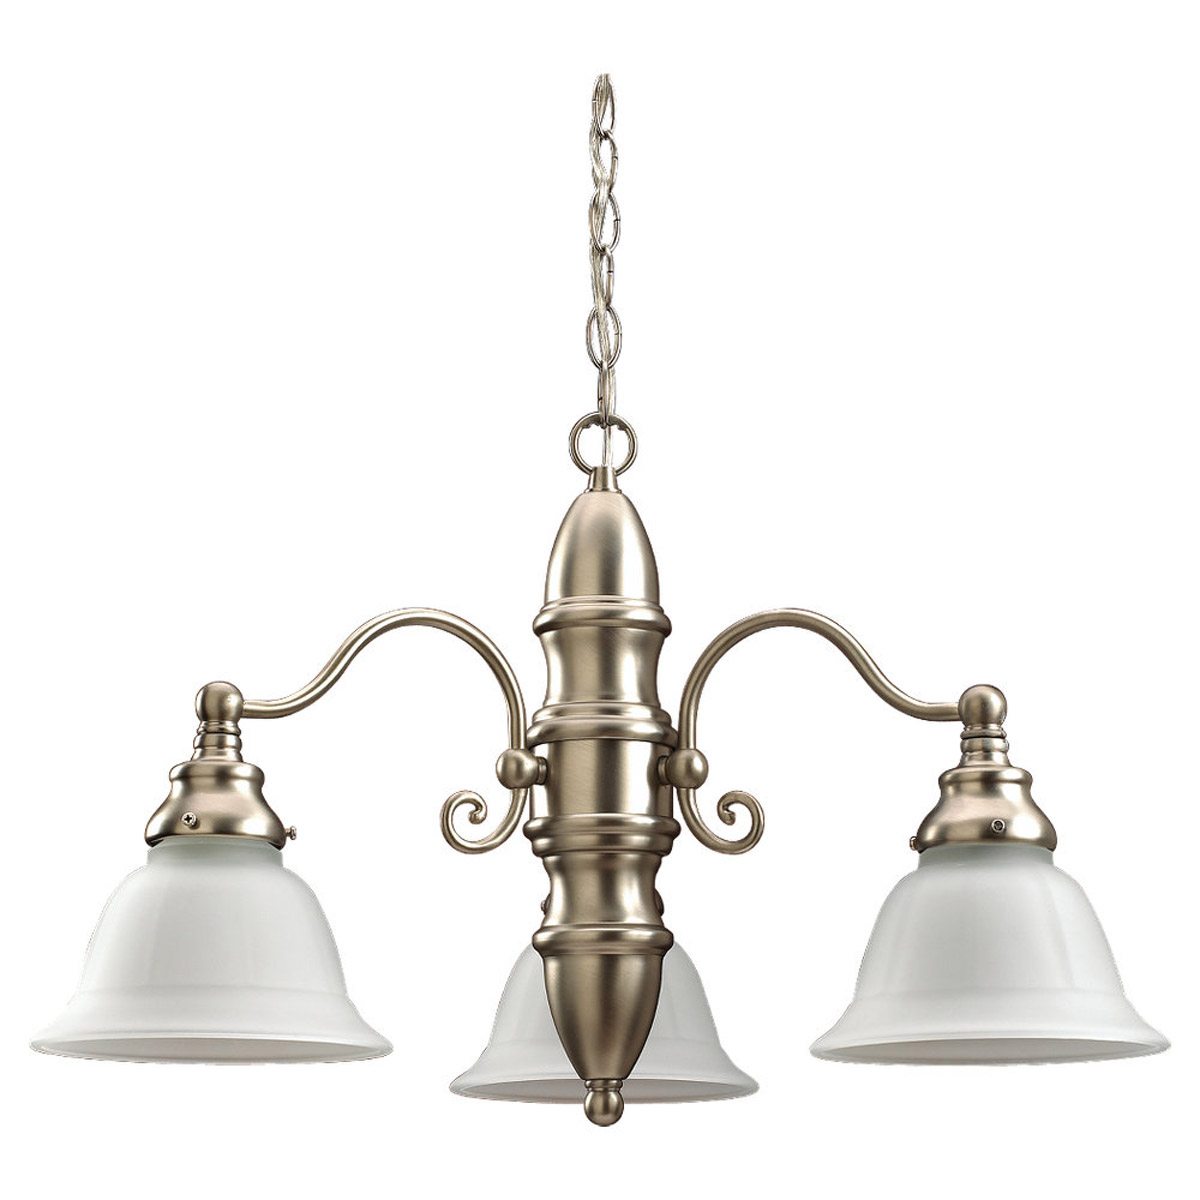 Sea Gull Lighting Canterbury 3 Light Chandelier in Brushed Nickel 31050-962